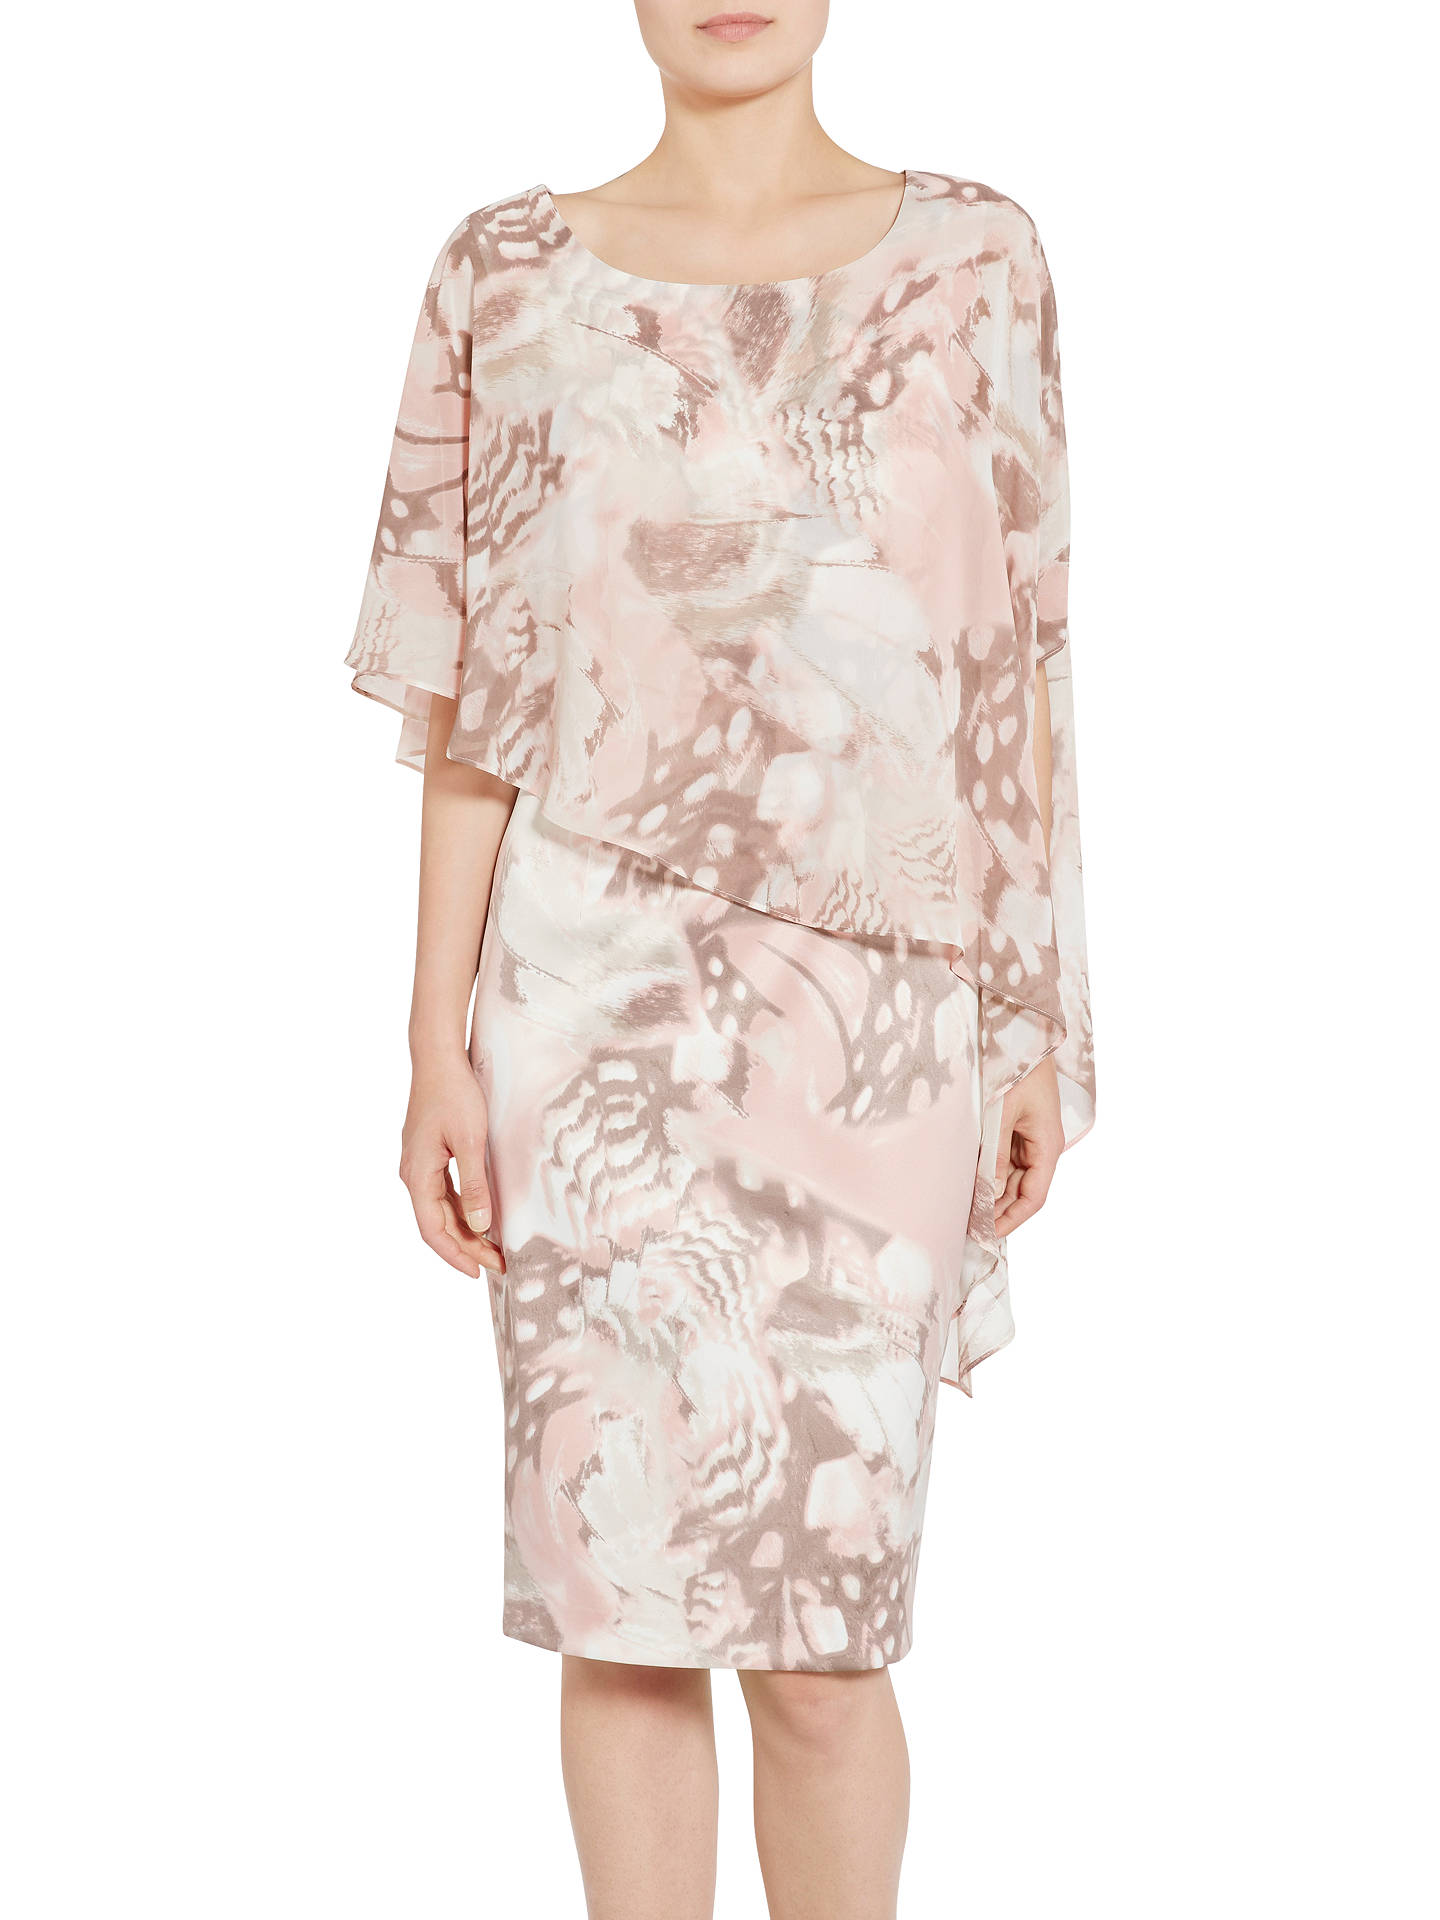 BuyGina Bacconi Printed Satin Dress With Chiffon Cape, Taupe/Blush, 10 Online at johnlewis.com